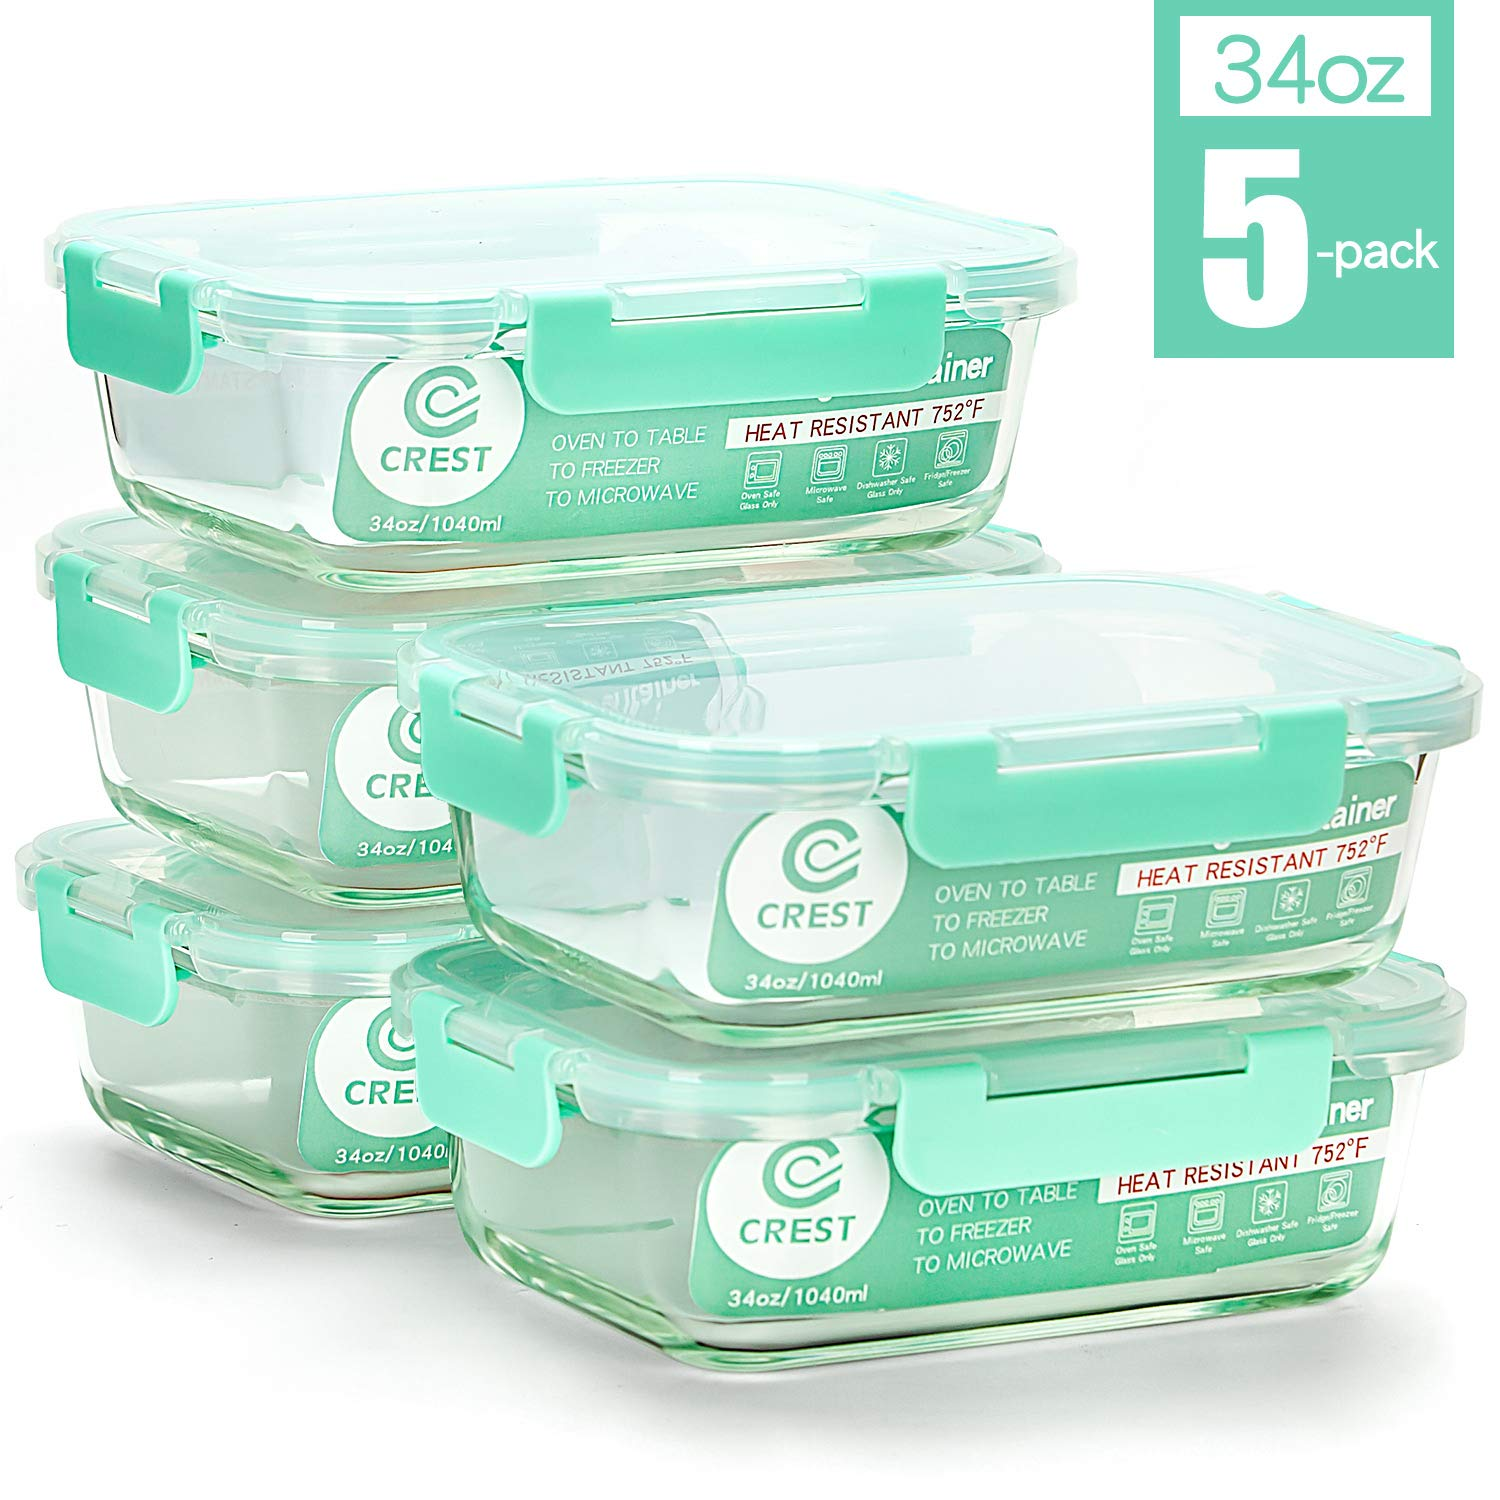 [5-Pack,34Oz] Glass Containers for Meal Prepping - Food Storage Containers with Locking Lids - Glass Food Storage Containers for kitchen use - Glass Meal Prep Containers